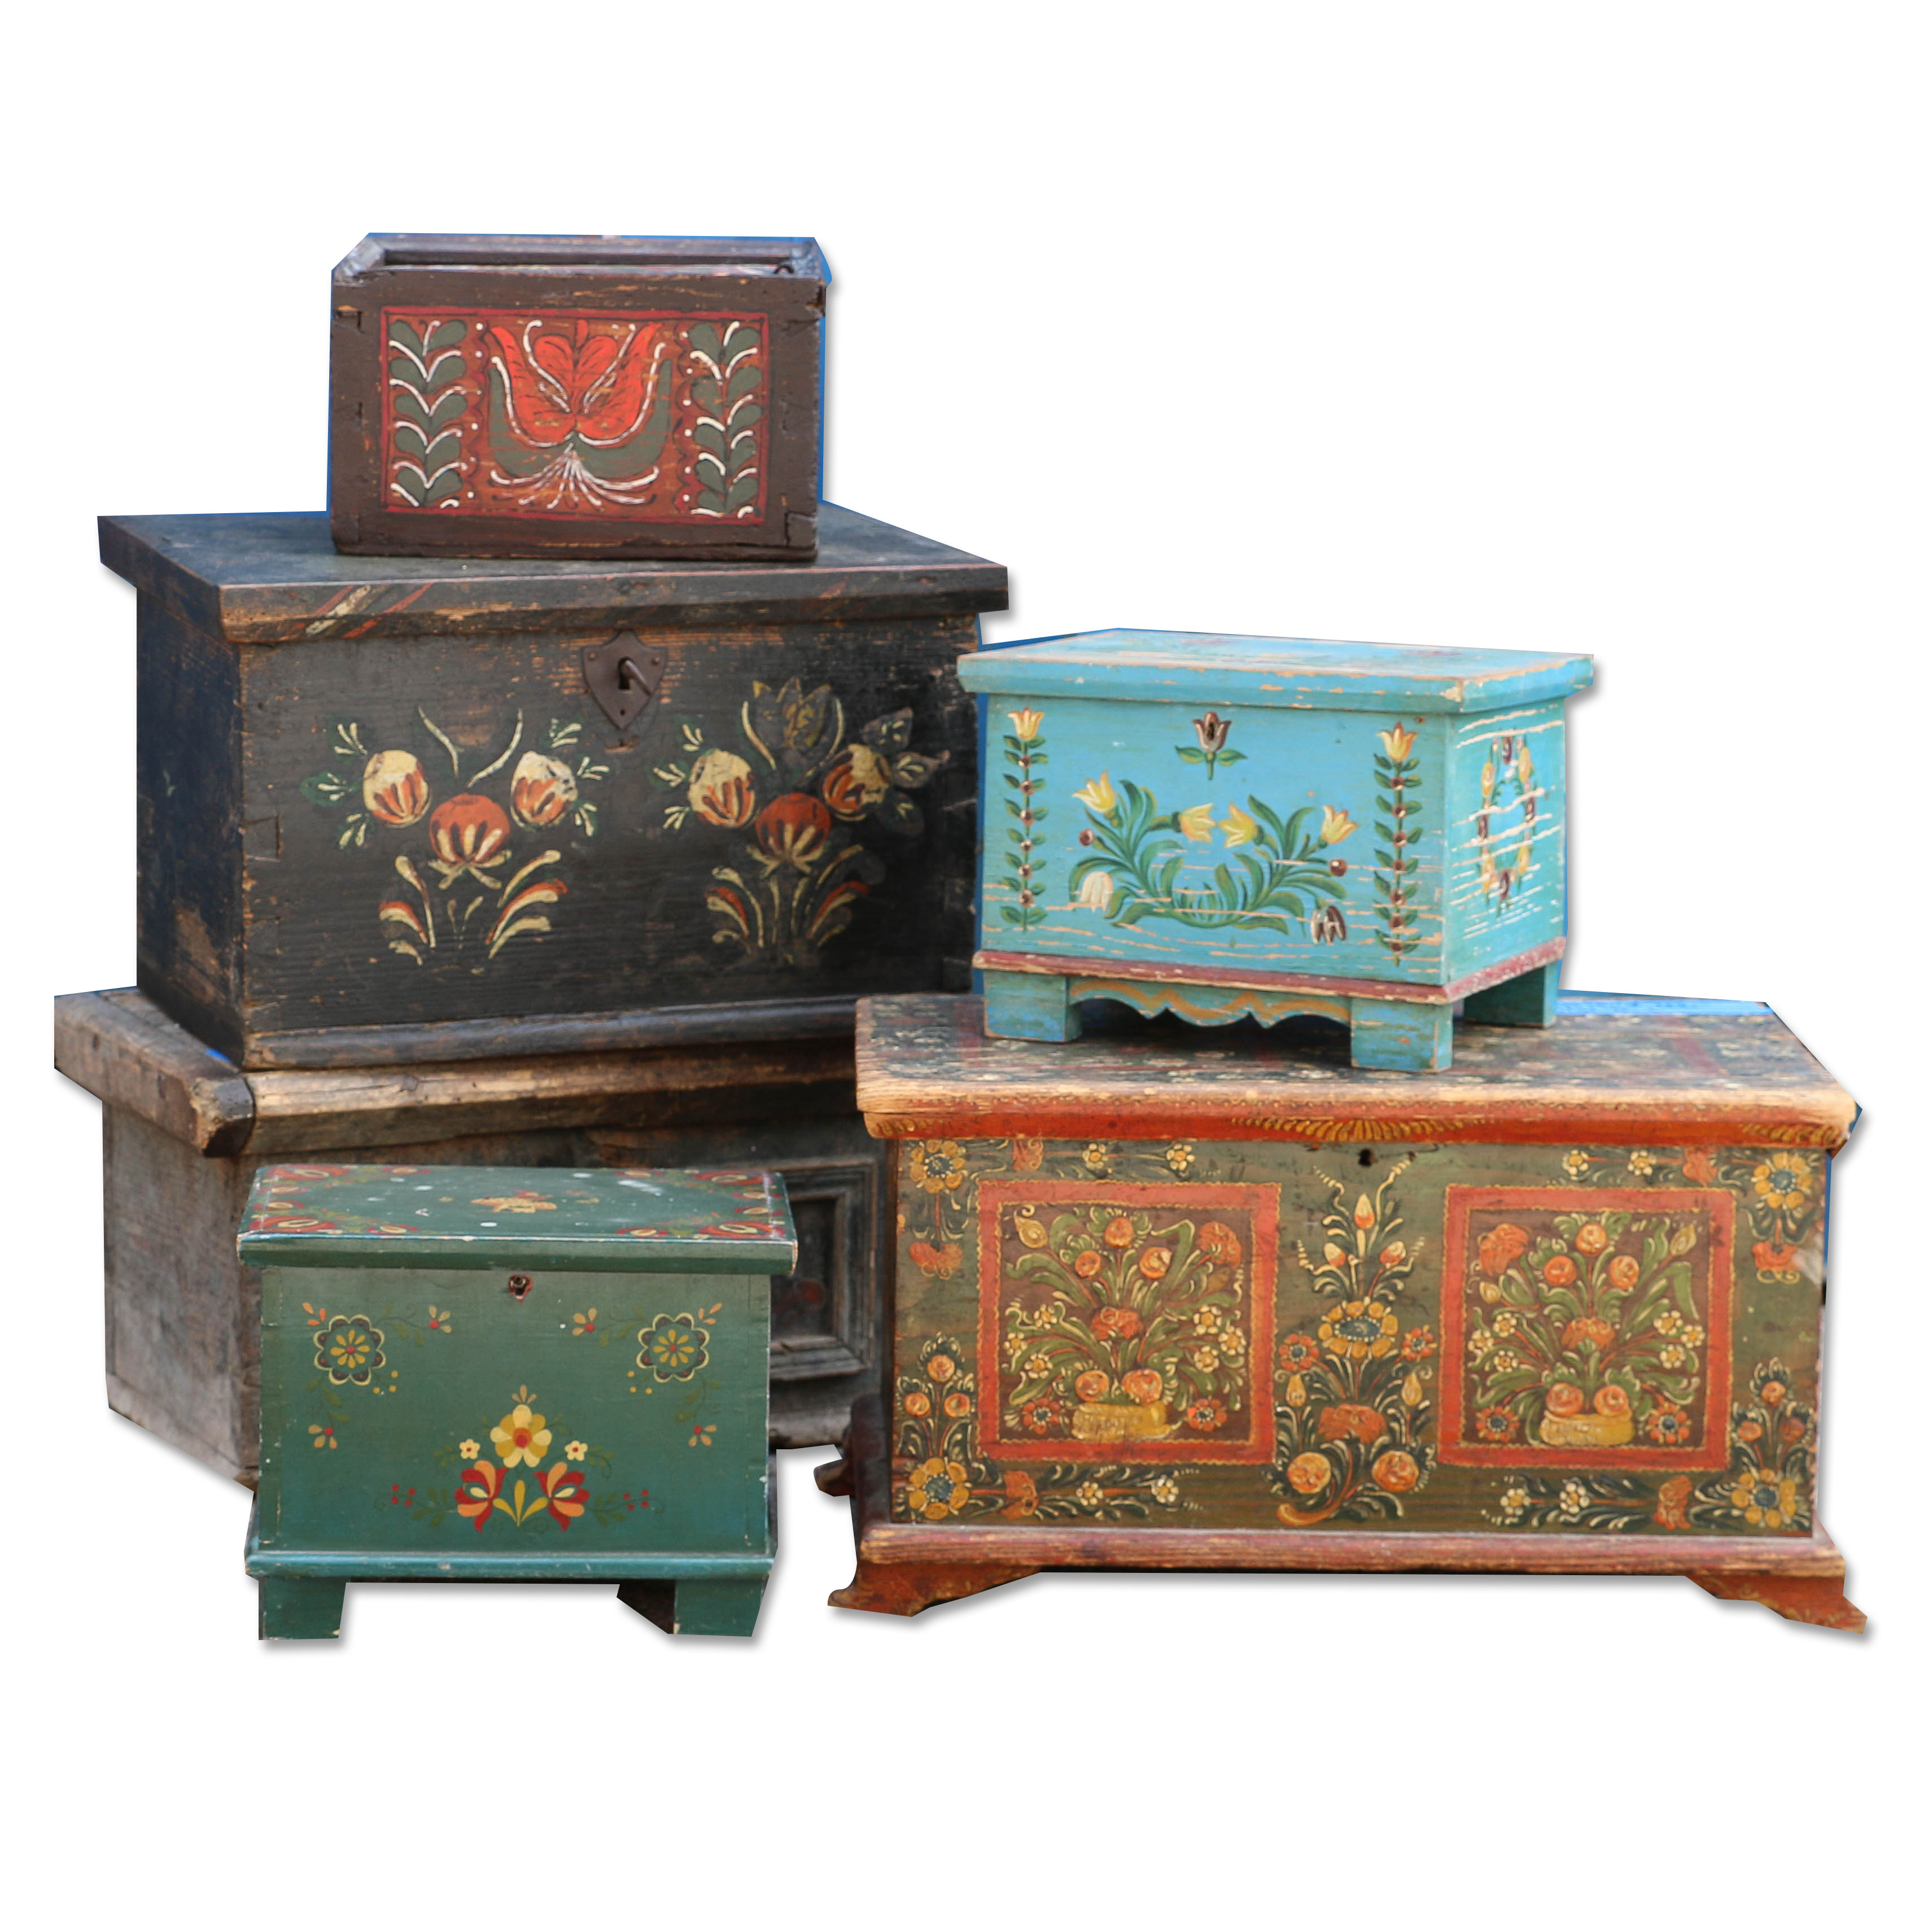 A Variety Of Folk Art Painted Boxes From Hungary